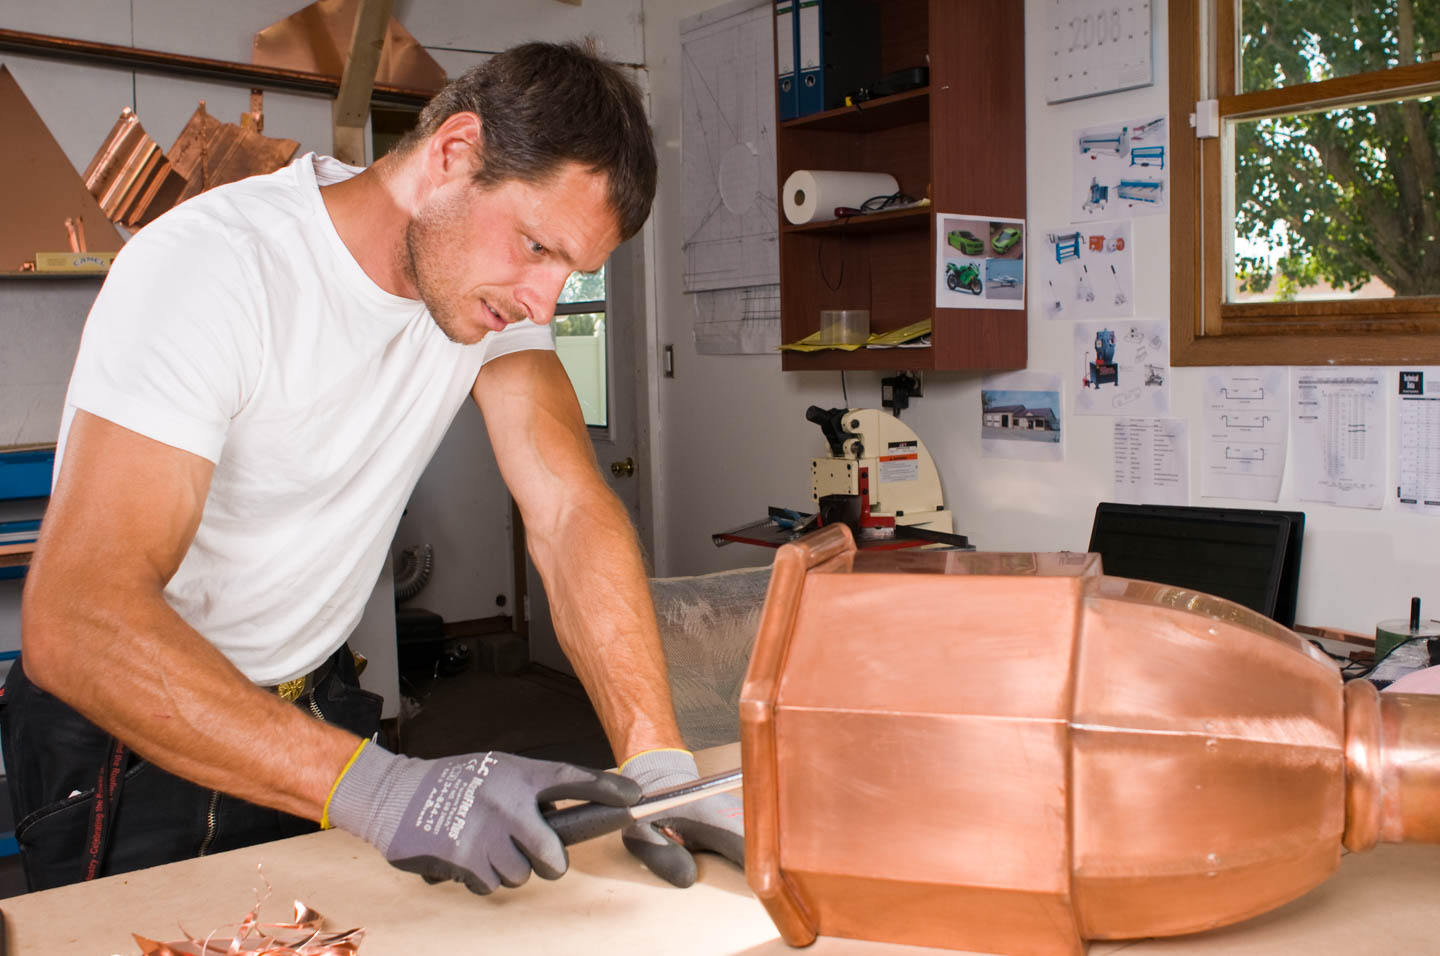 Erno works on copper finials in his workshop